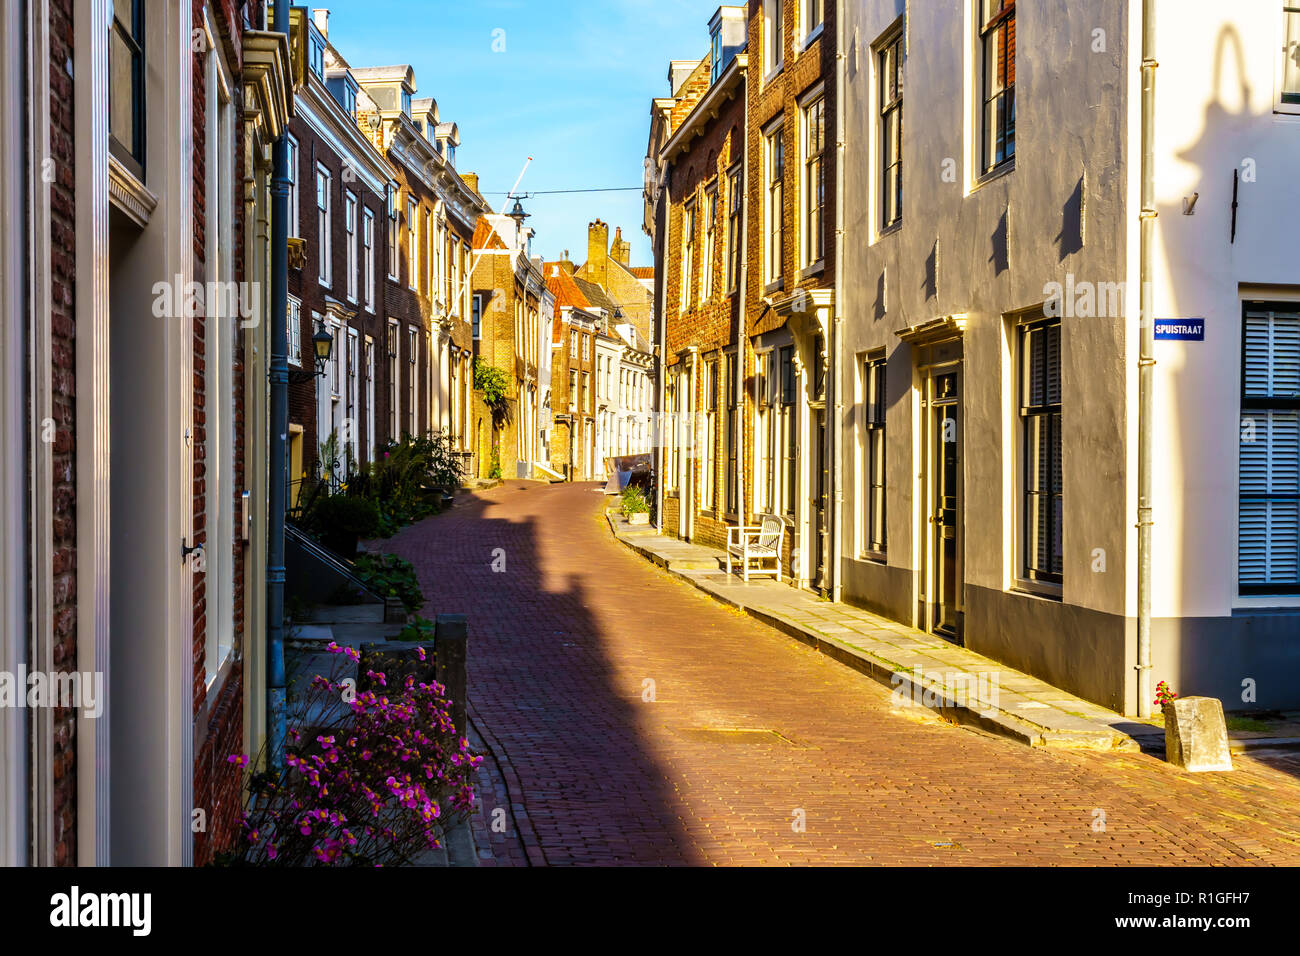 Sunset over the typical Narrow Streets in the Historic City of Middelburg in the Zeeland Province of the Netherlands Stock Photo